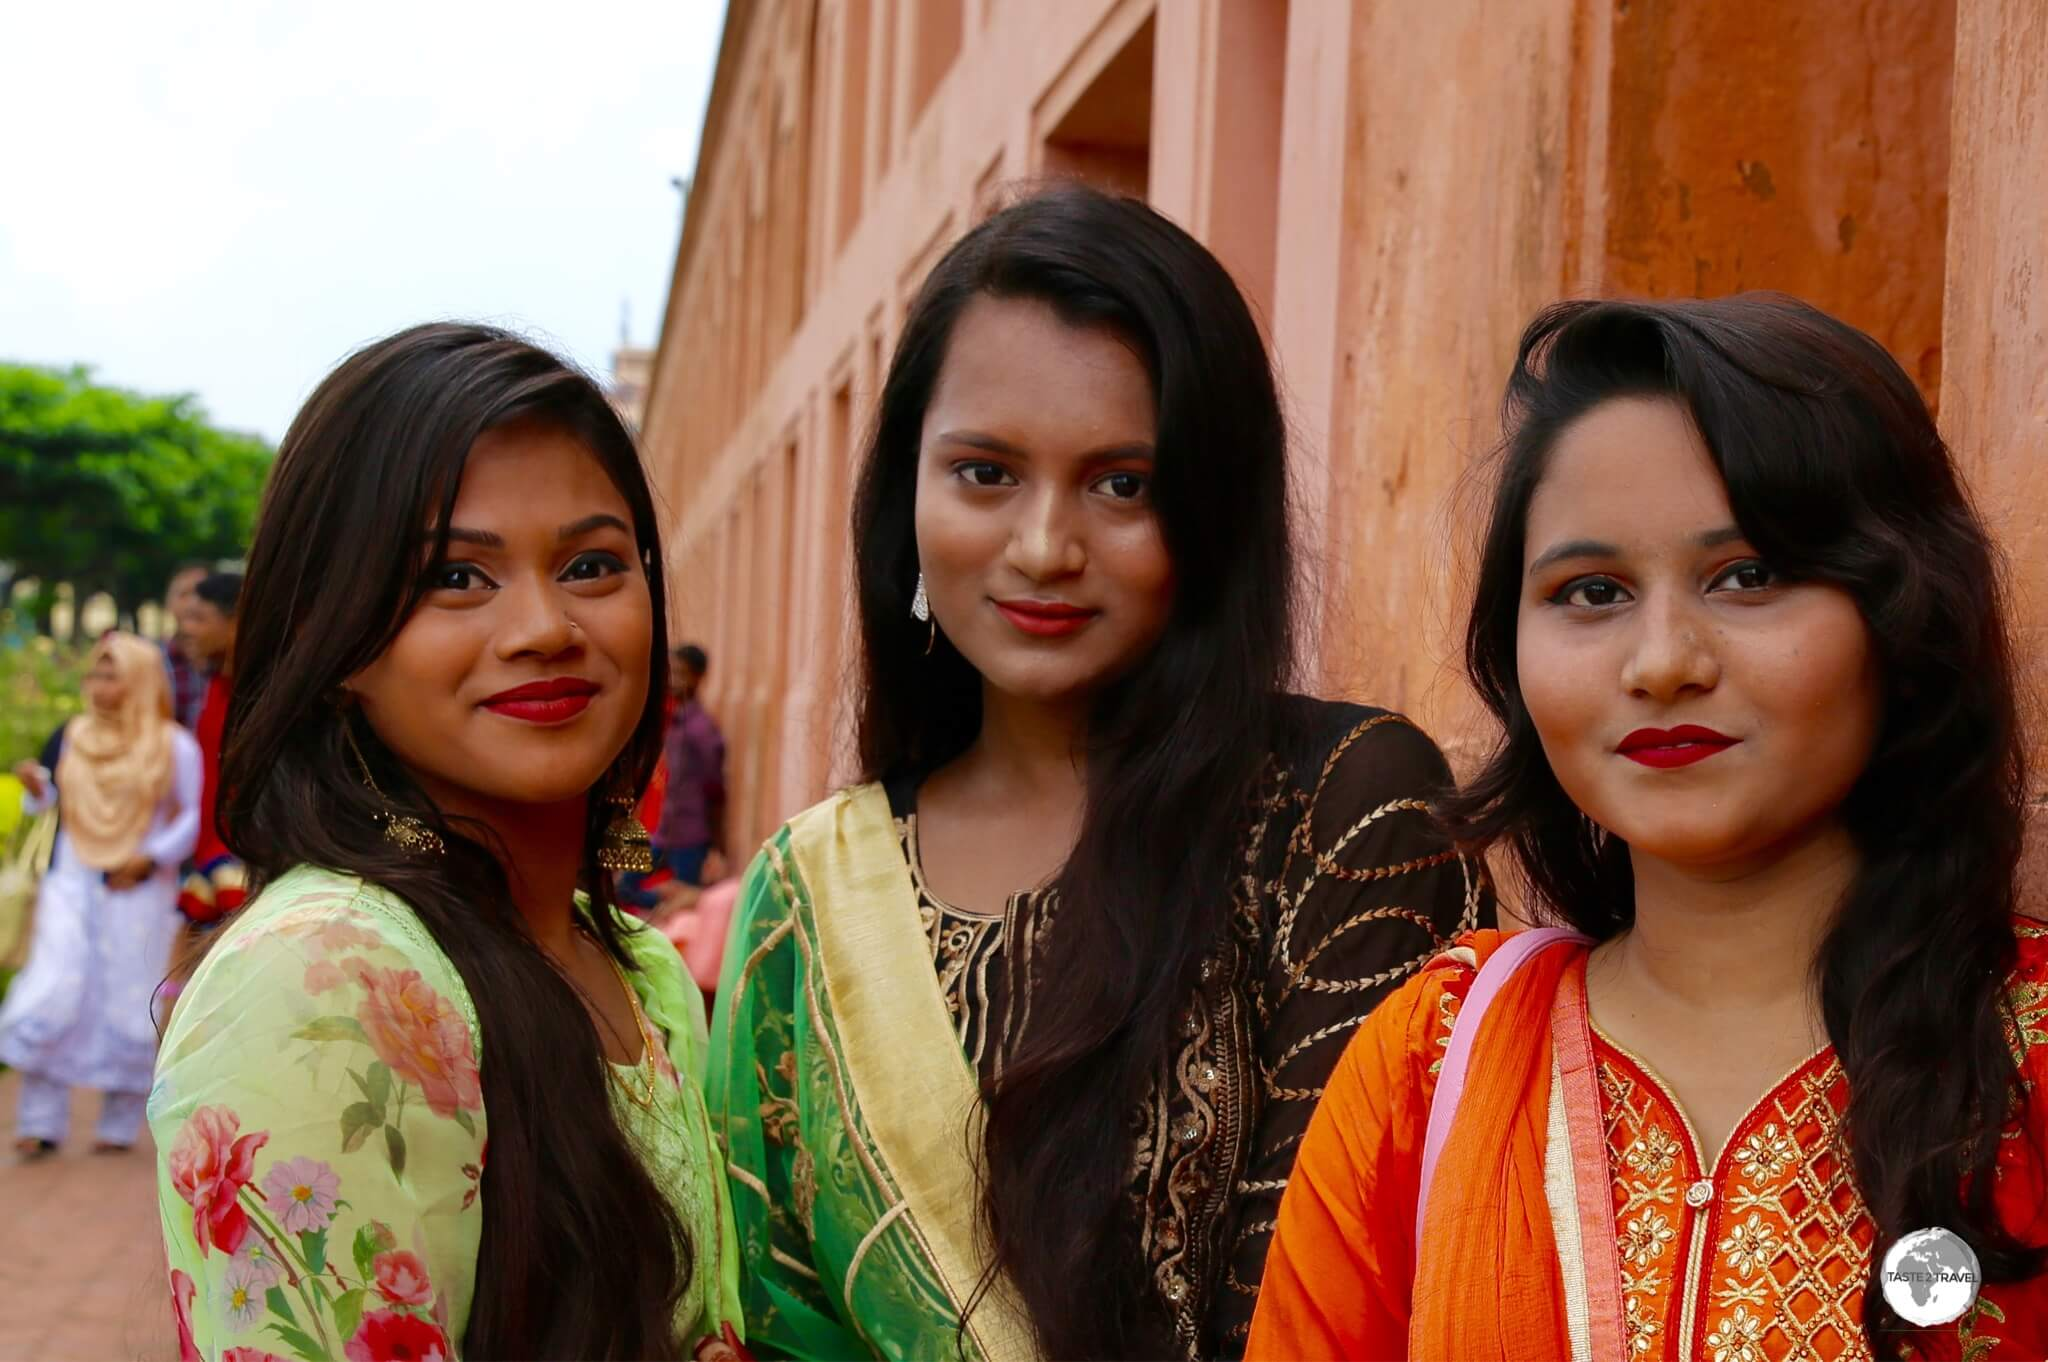 Bangladeshi girls looking resplendent in their colourful Shalwar Kameez at Lalbagh fort.